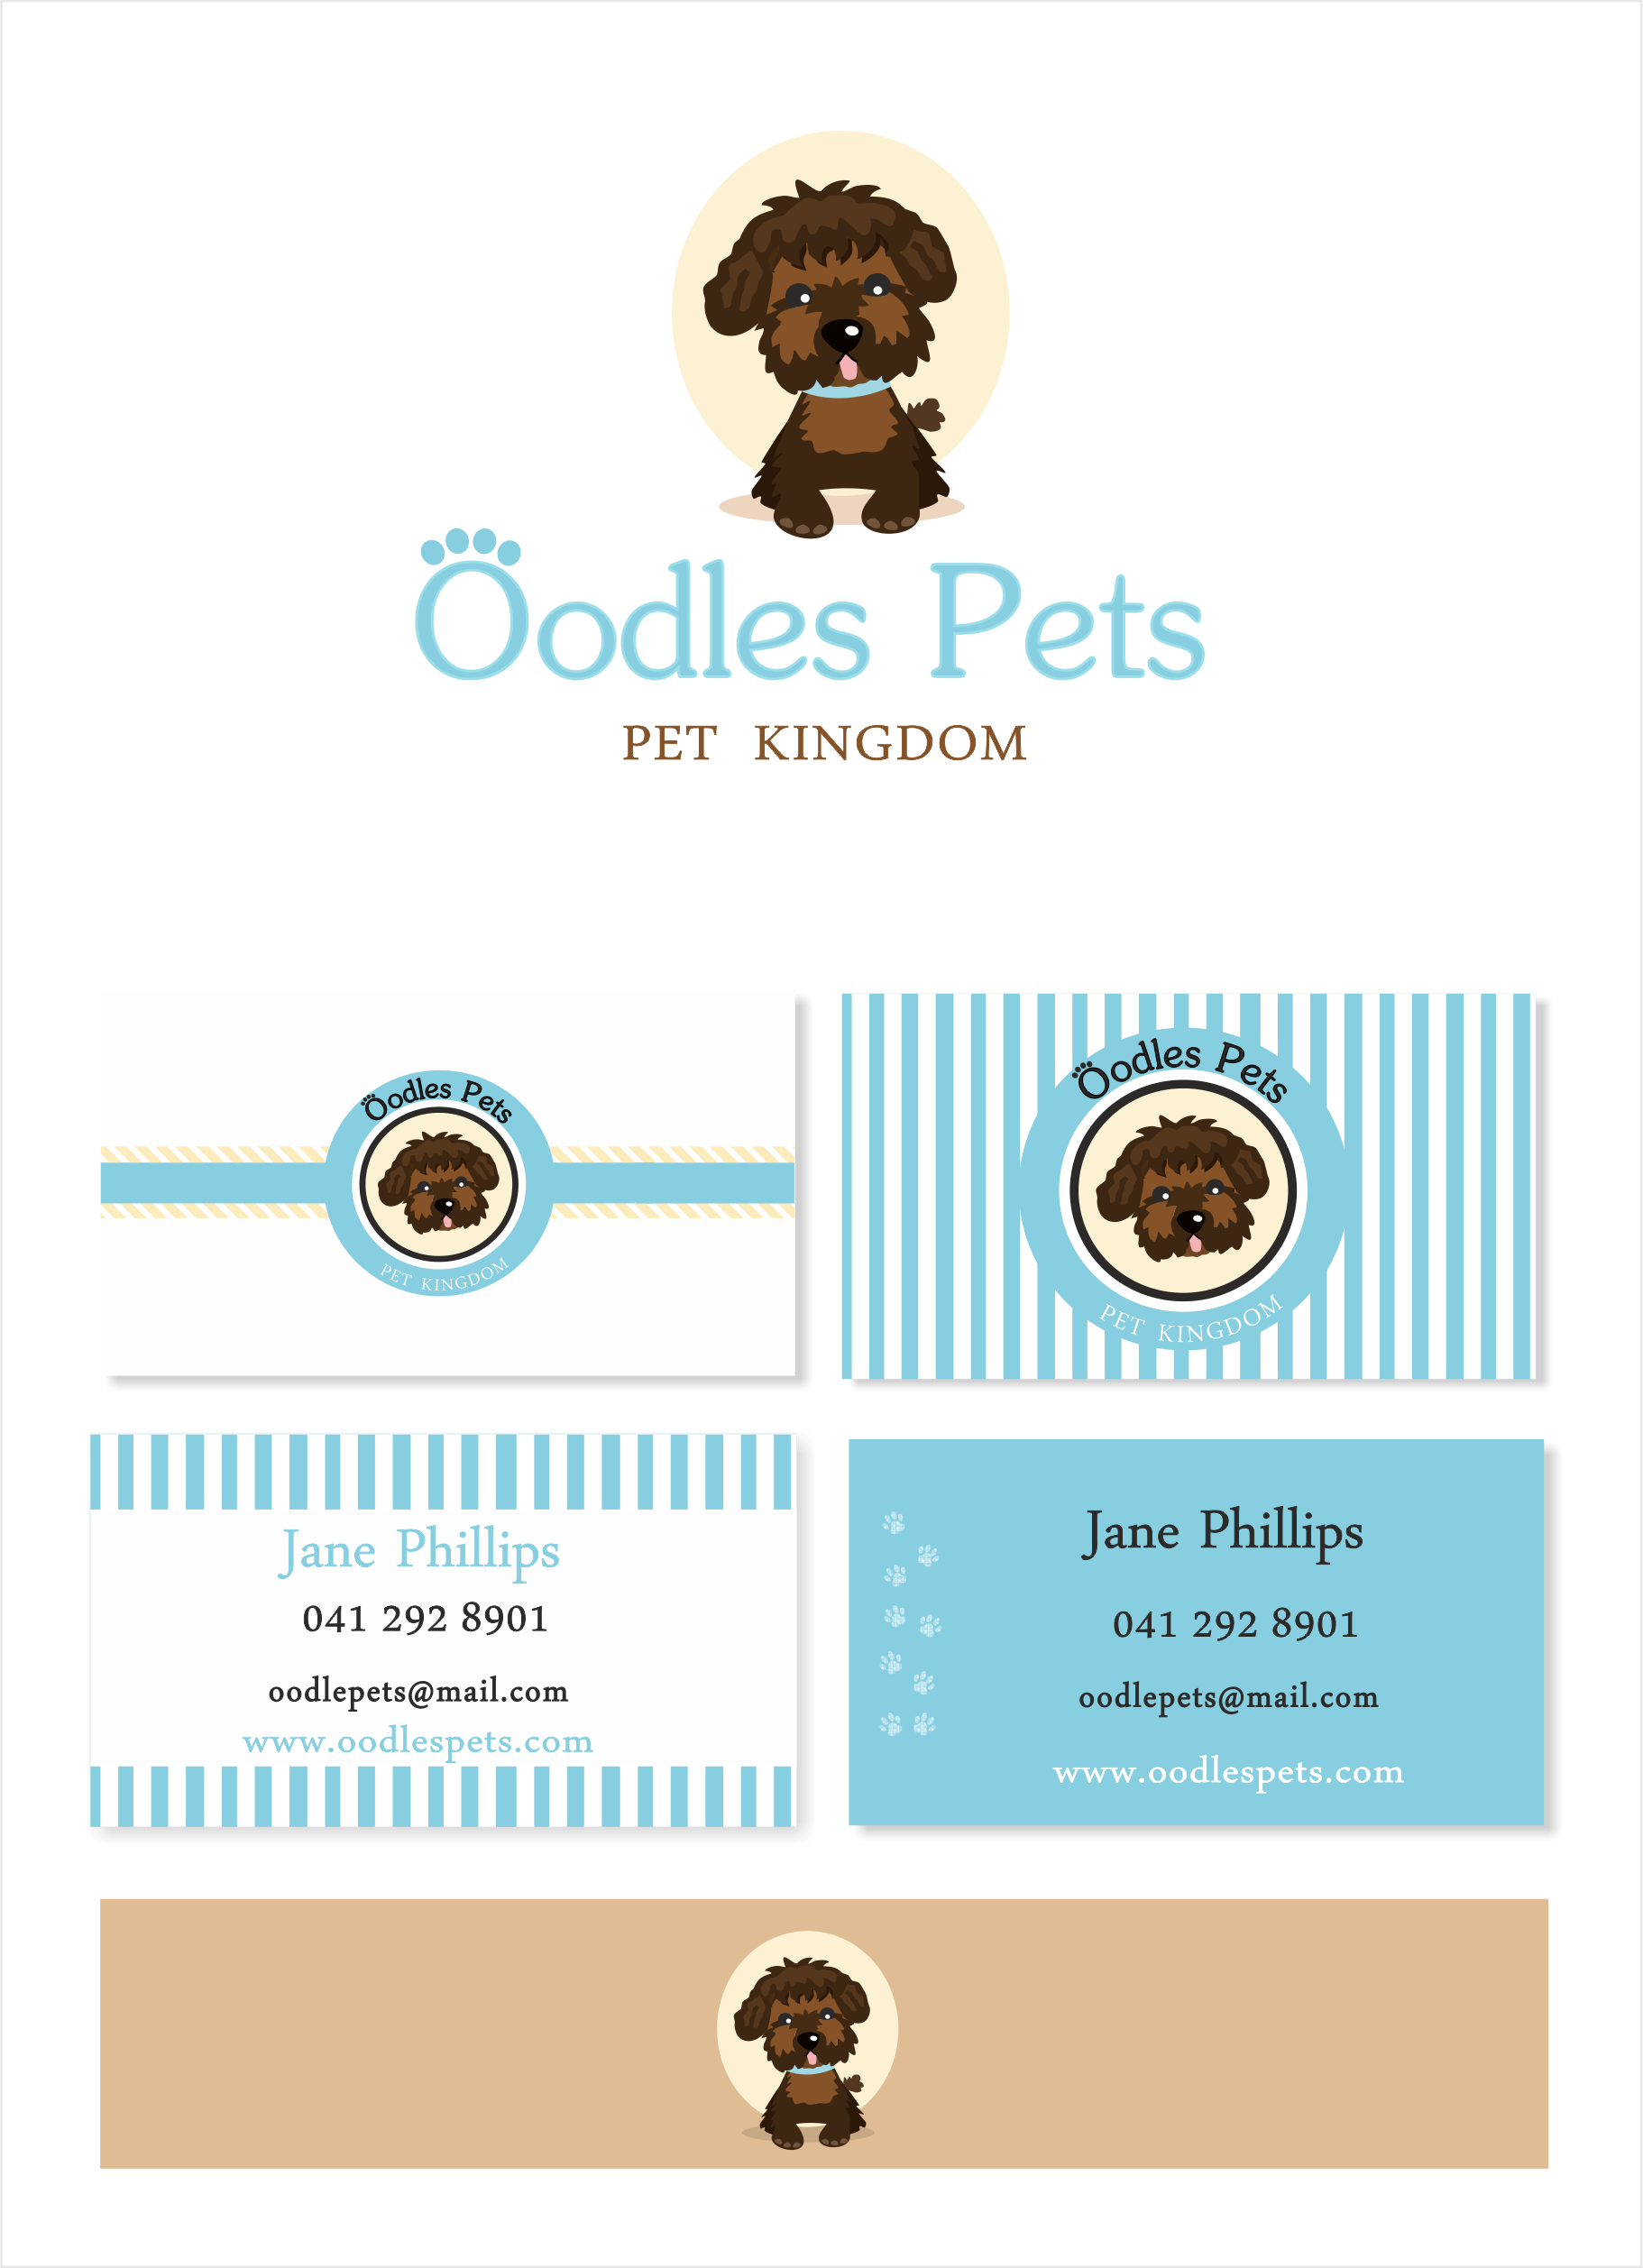 Looking for oodles of designs to launch Oodles pets